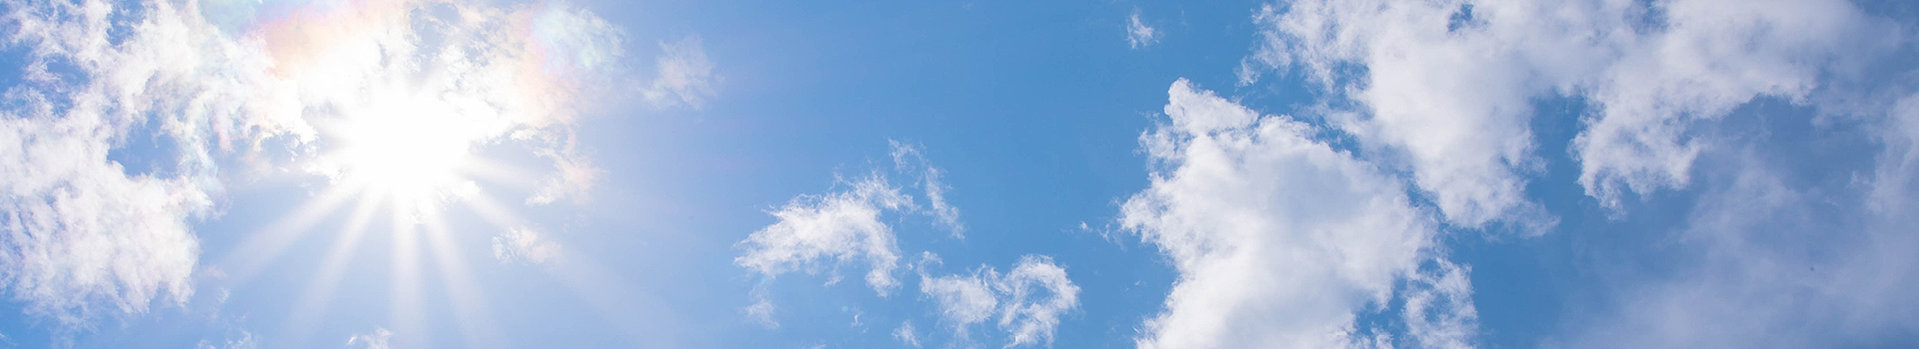 Sun and scattered clouds in a blue sky